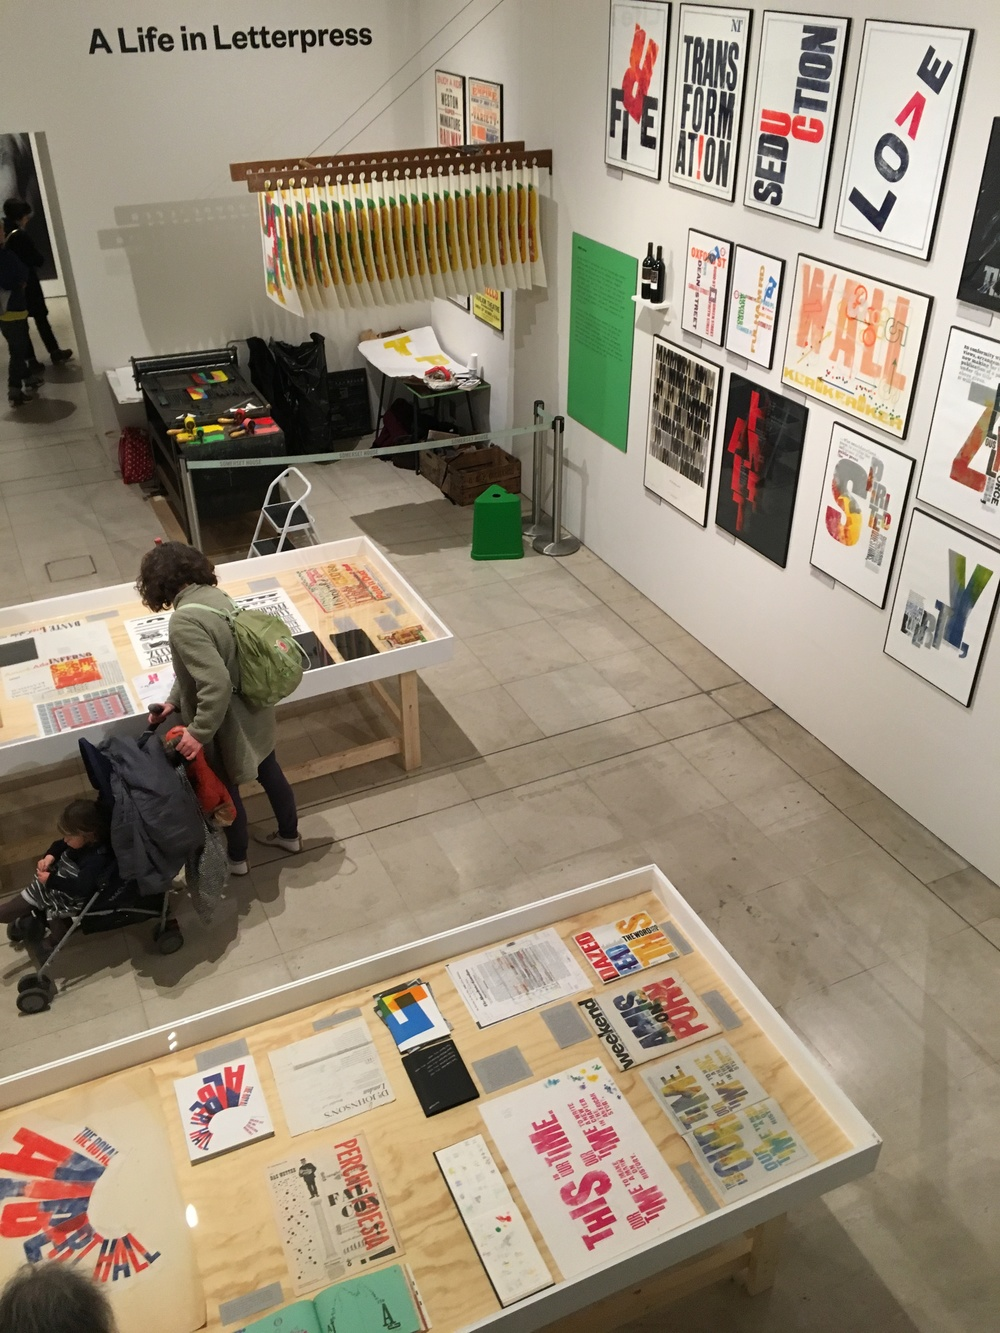 Visited the inspiring 'A Life in Letterpress' exhibition by Alan Kitching at Pick Me Up at Somerset House, had a great day and even got my book signed by the great man himself!